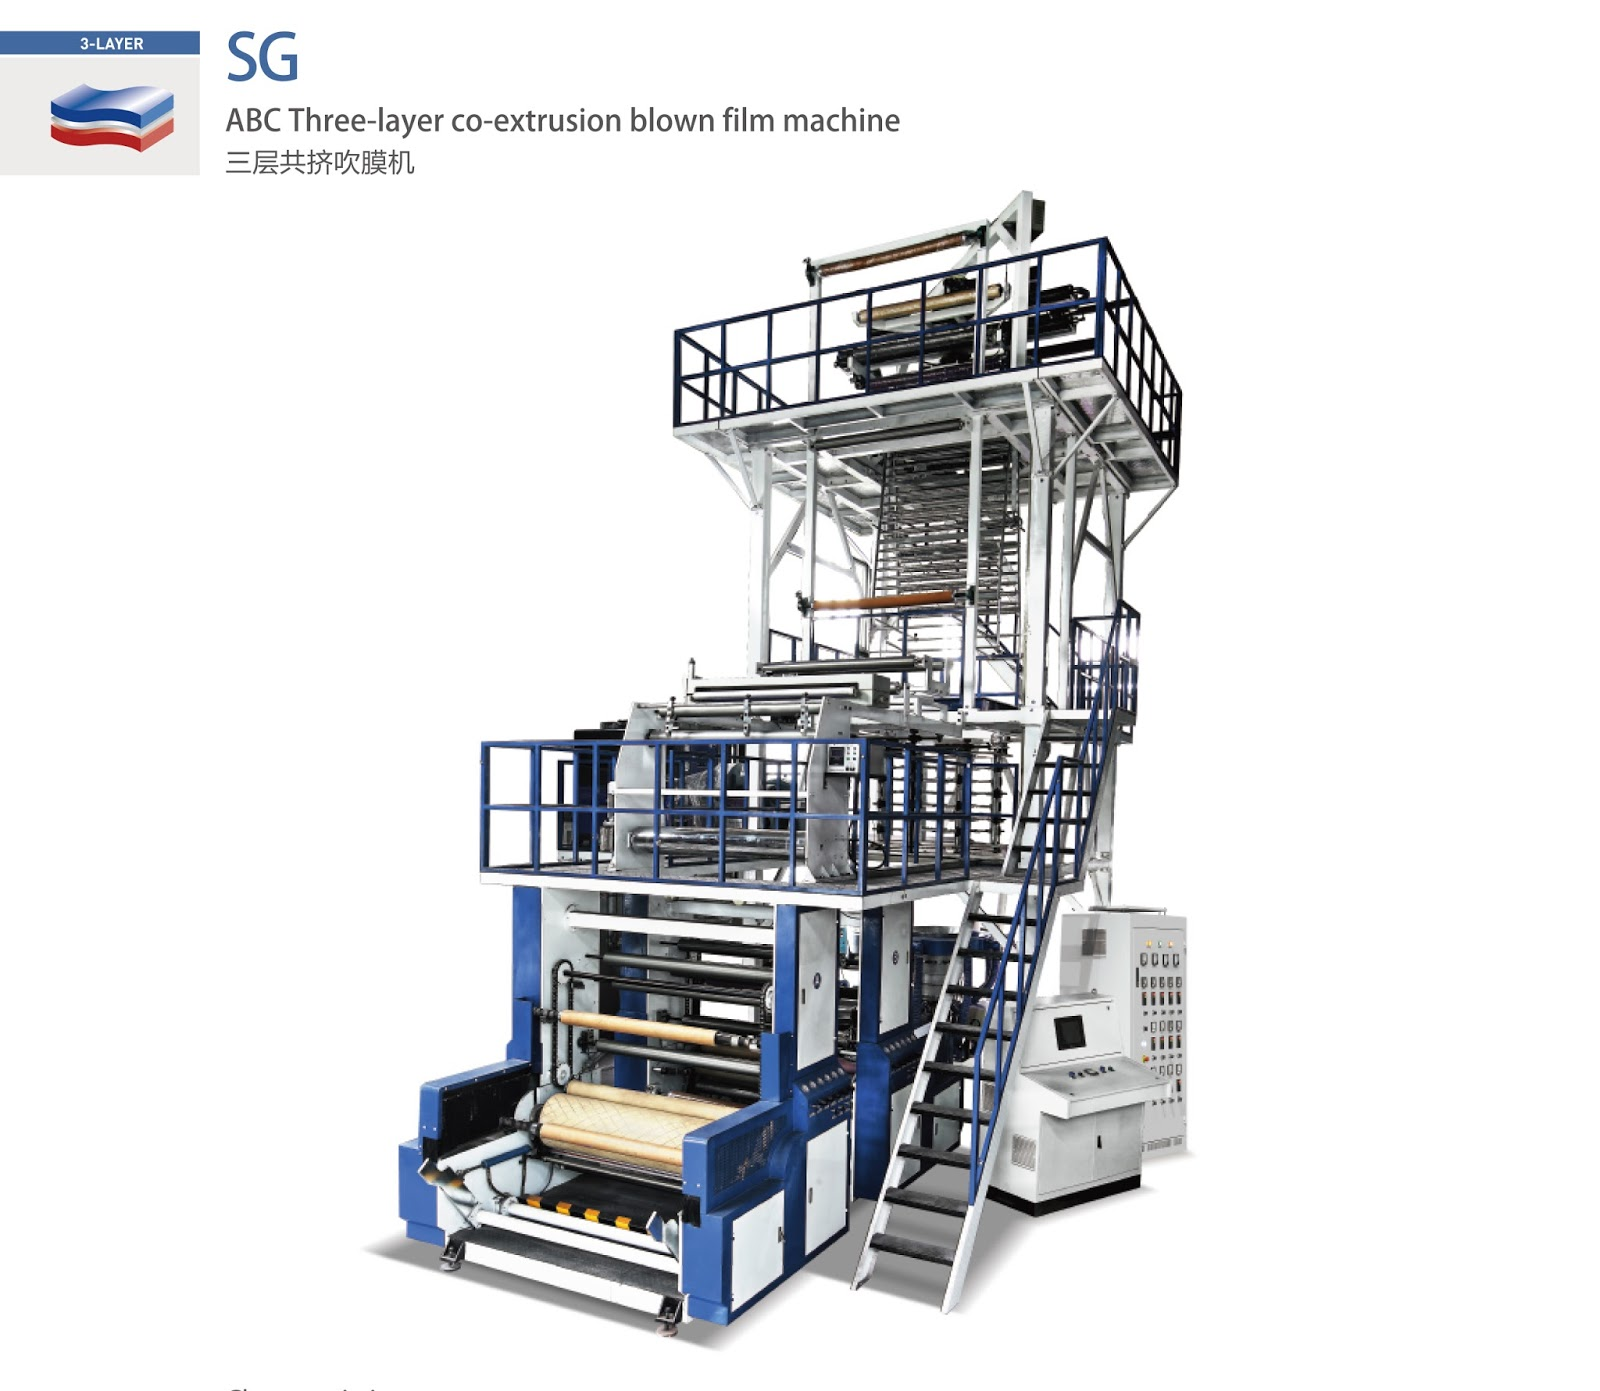 PLASTAR--Plastic Packaging Machinery: ABC Three-Layer Co-extrusion